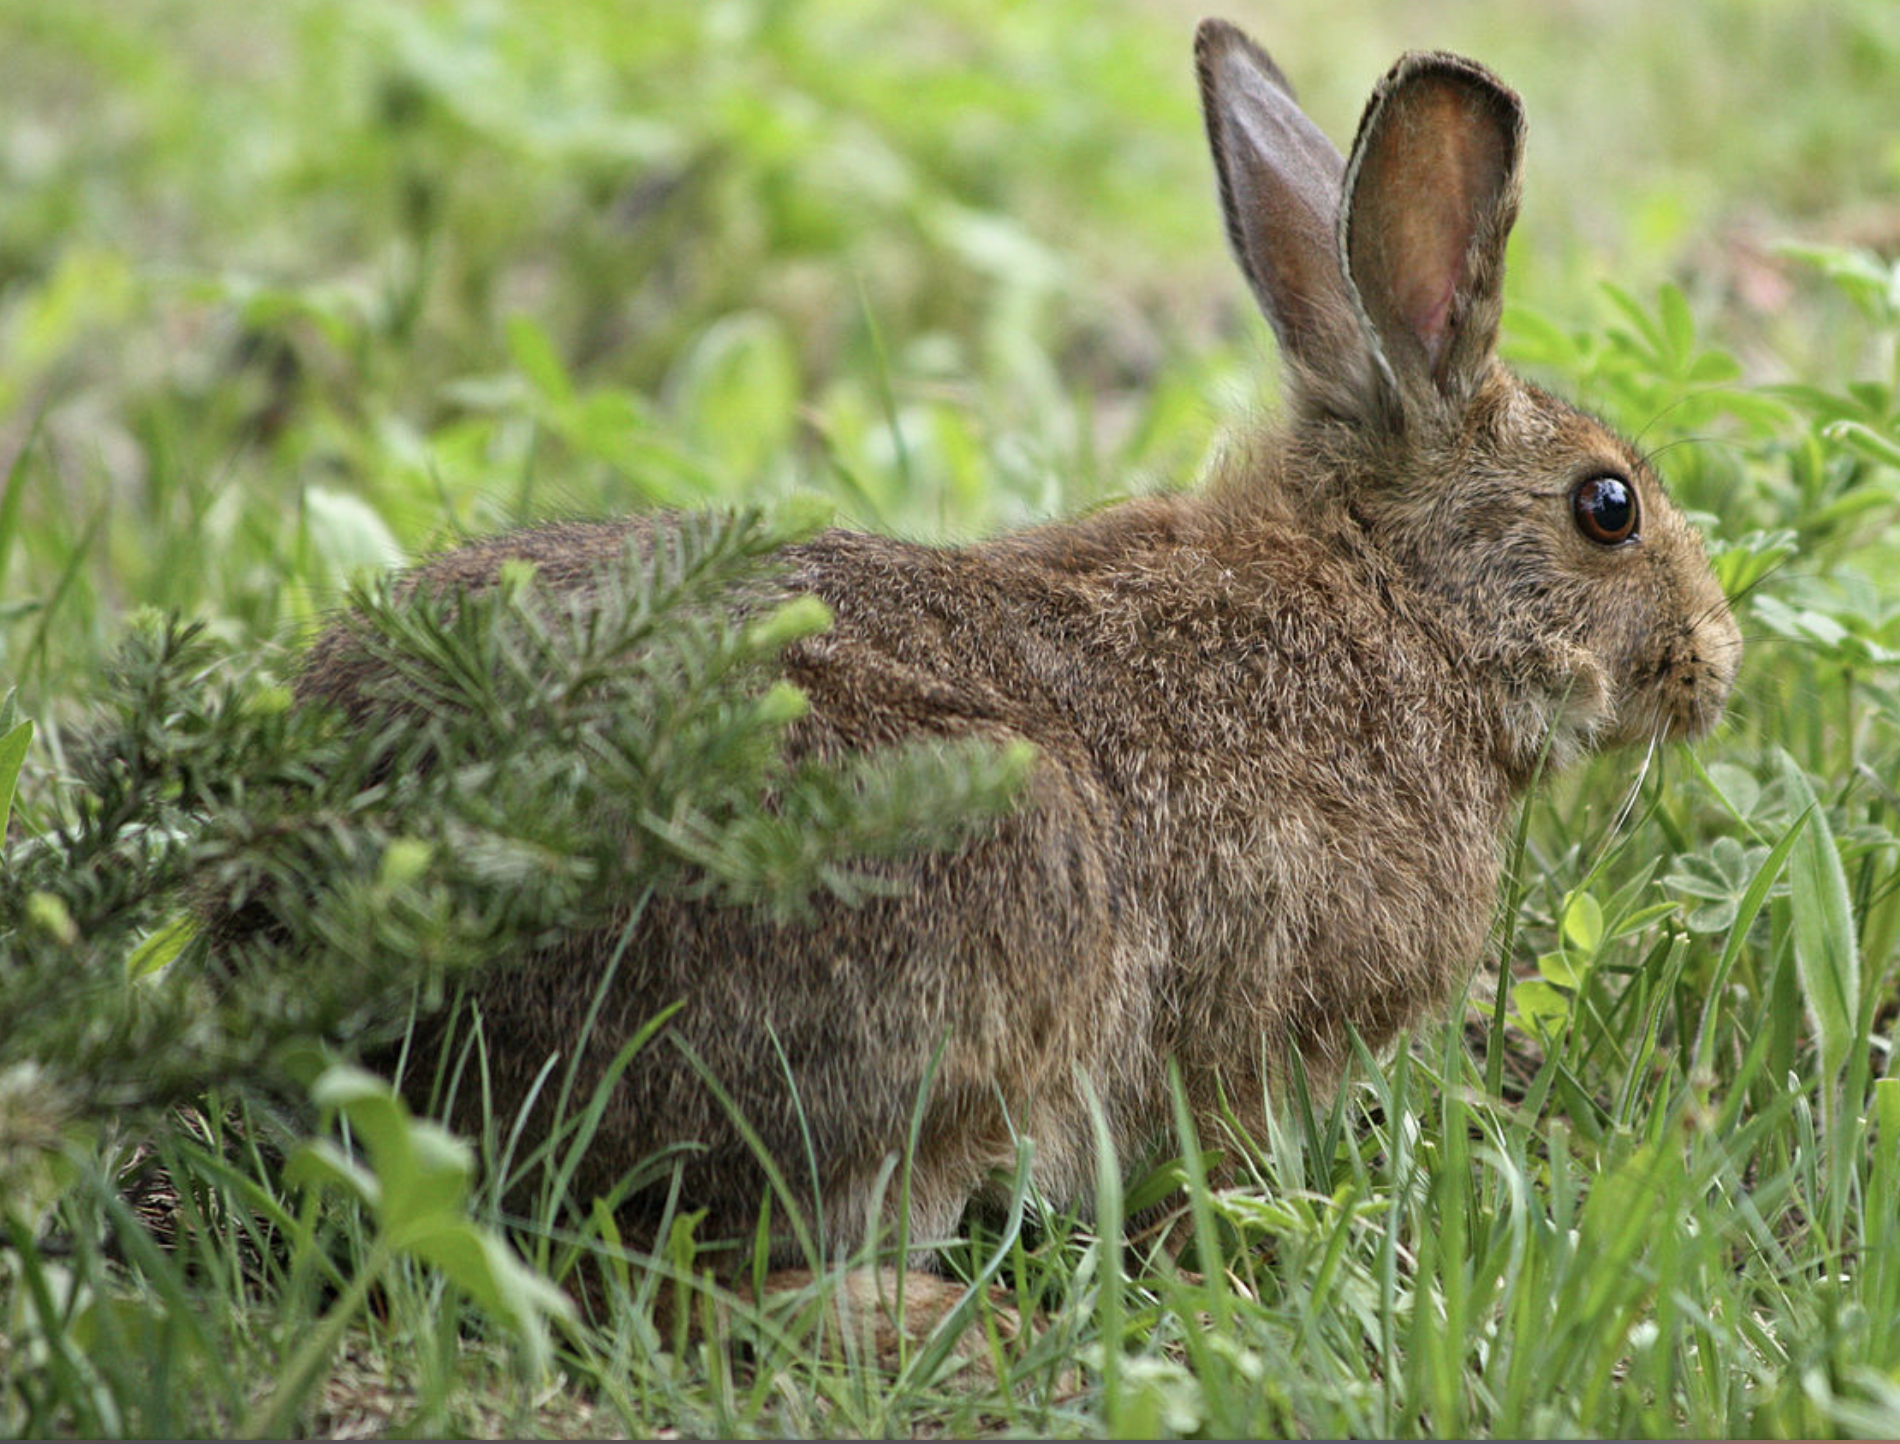 Encounter with a hare